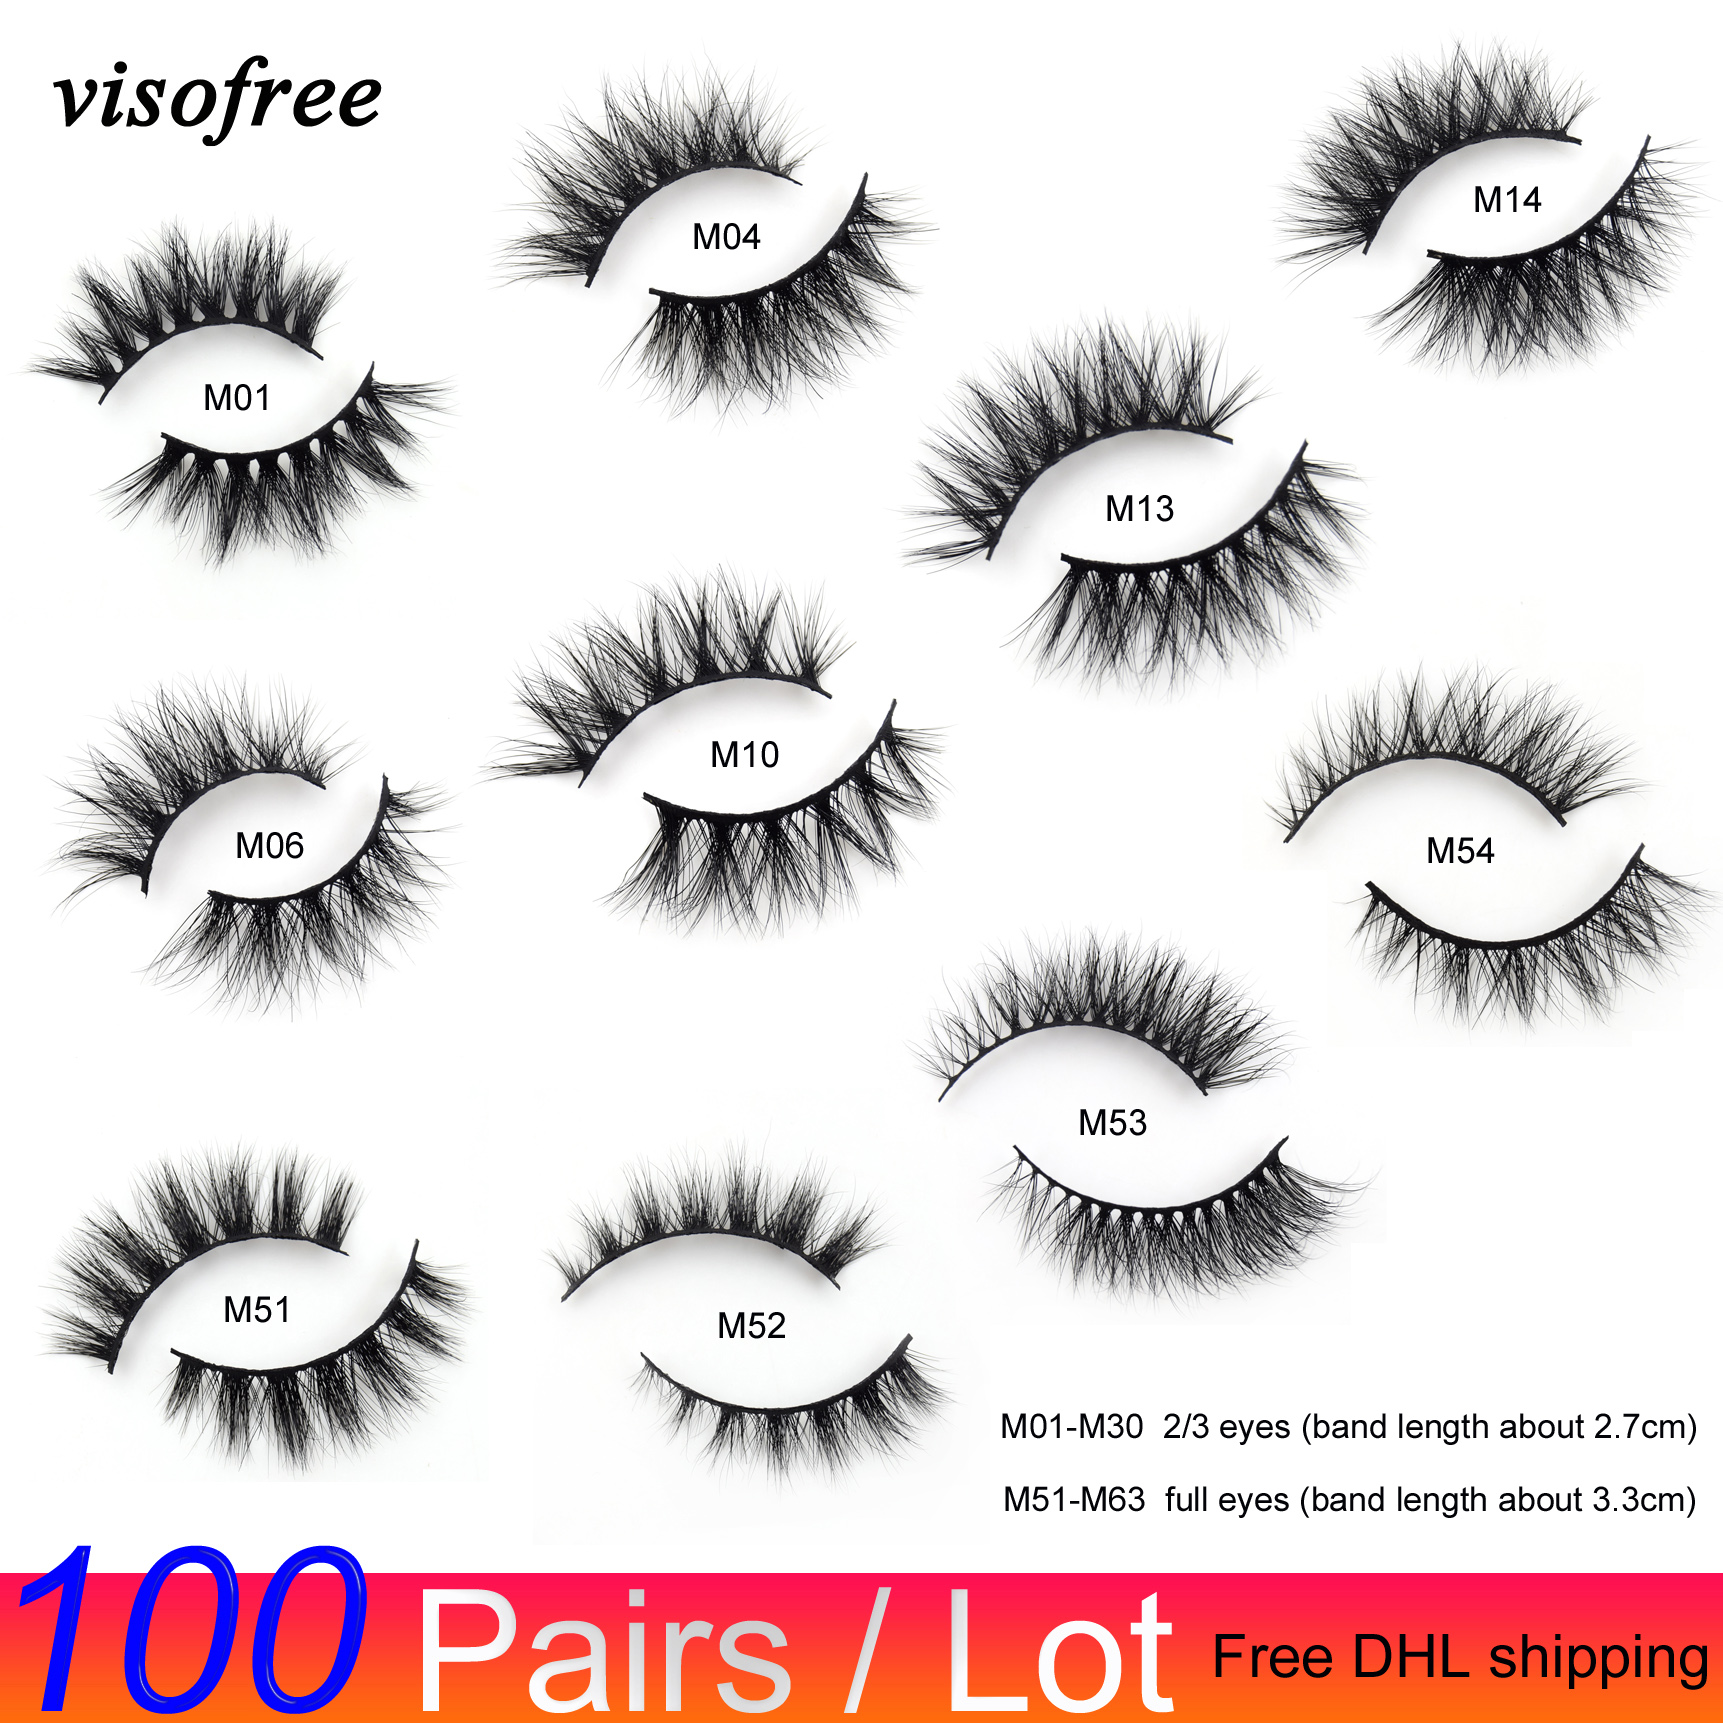 100 Pairs/lot Free DHL Visofree Wholesale 3D Mink Lashes Makeup Mink Eyelashes Natural Lashes Bulk Mink Eyelashes New Style Lash